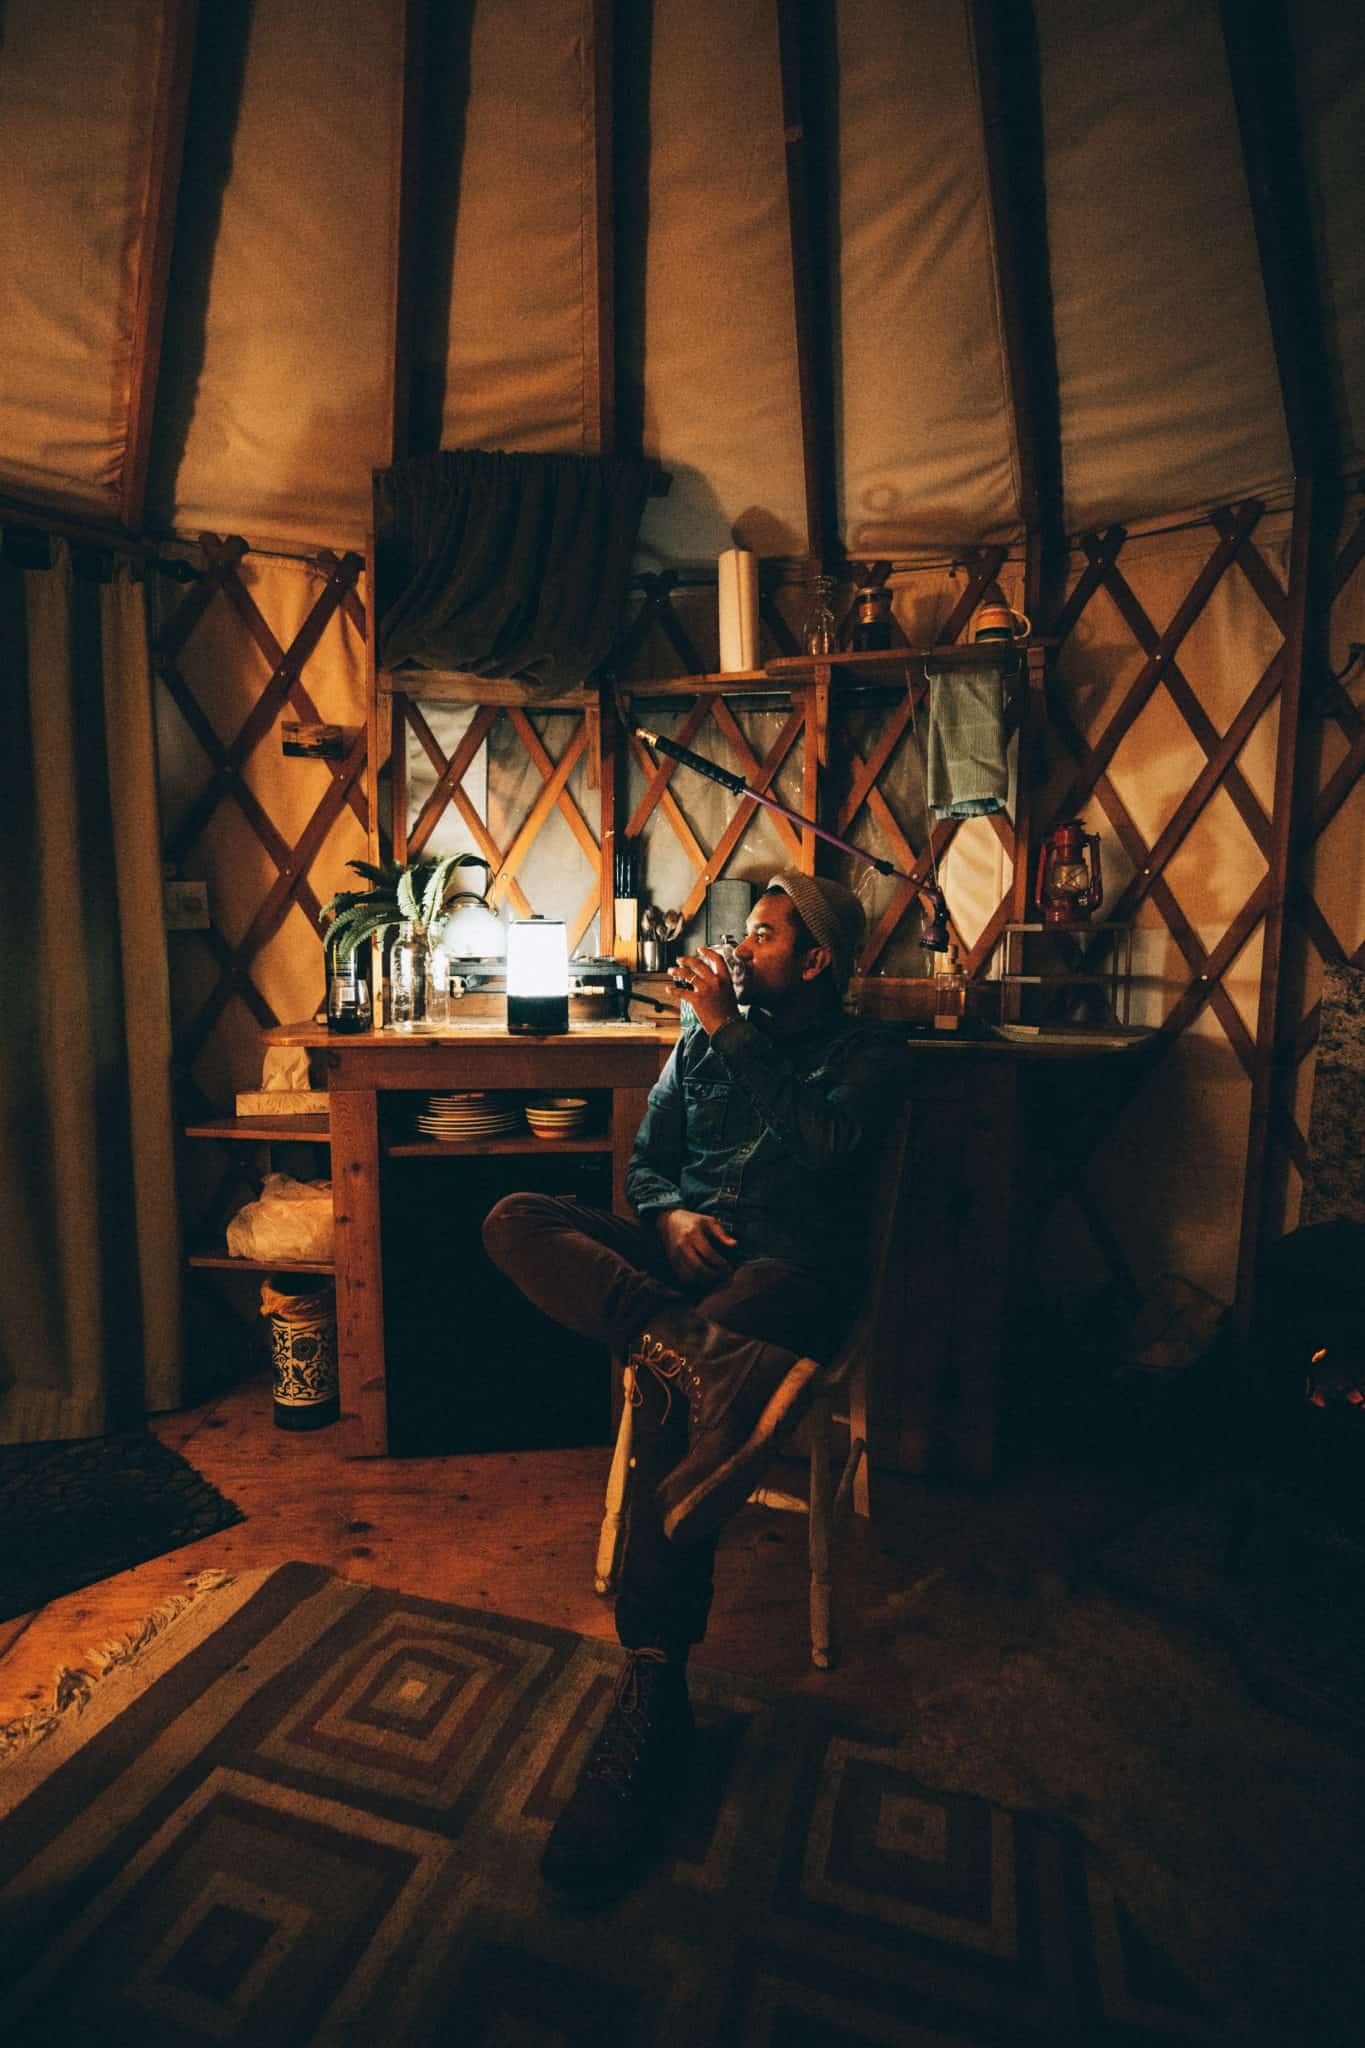 interior of yurt with lights and wine